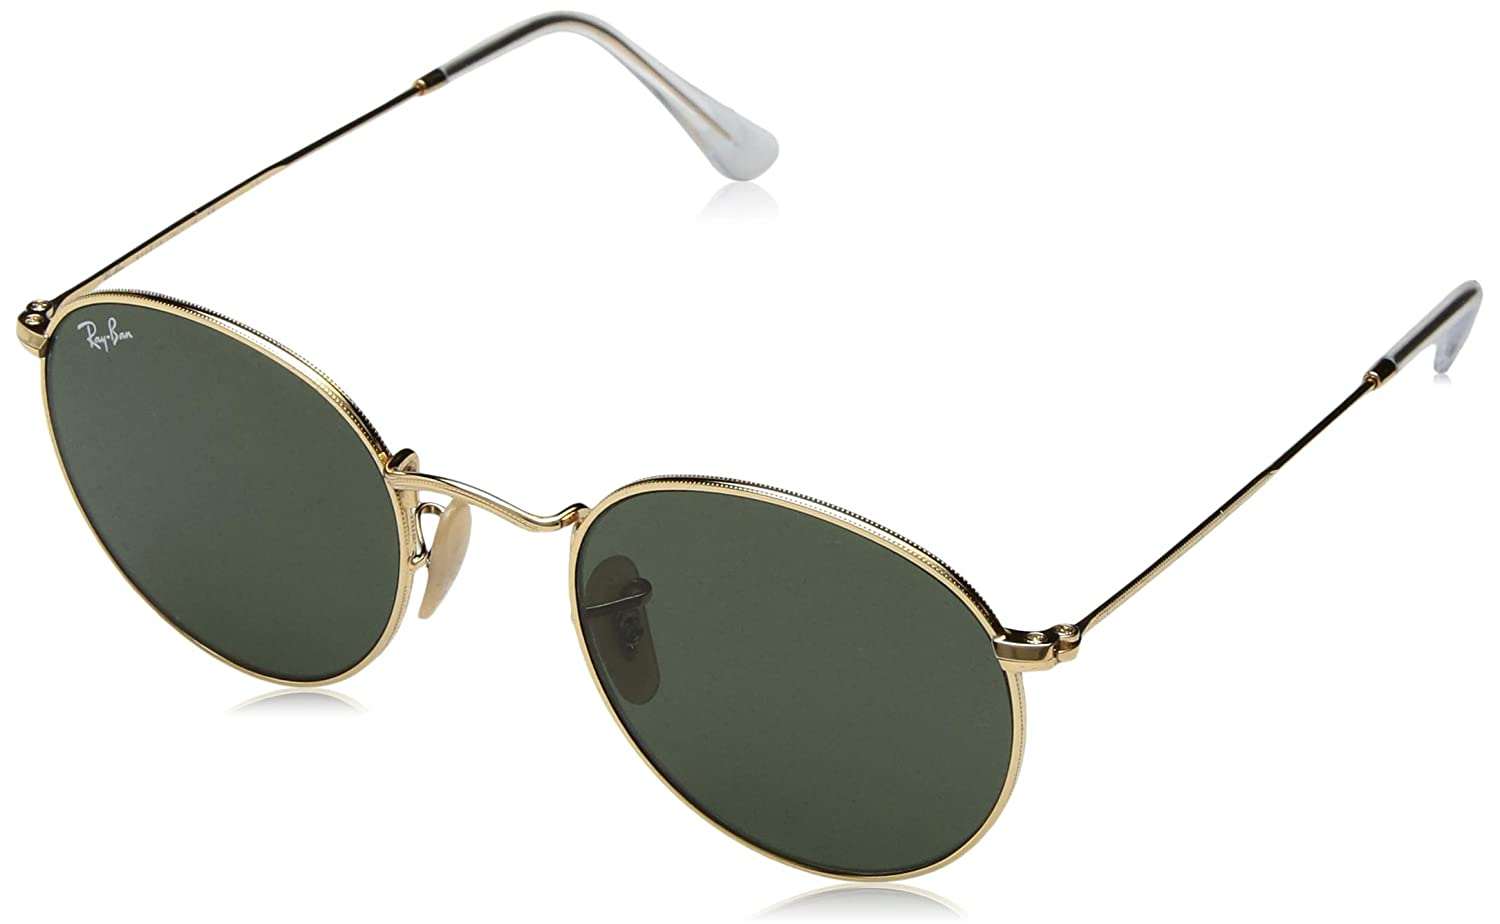 b3d4103590 Amazon.com  Ray-Ban Men s Metal Man Sunglass Round